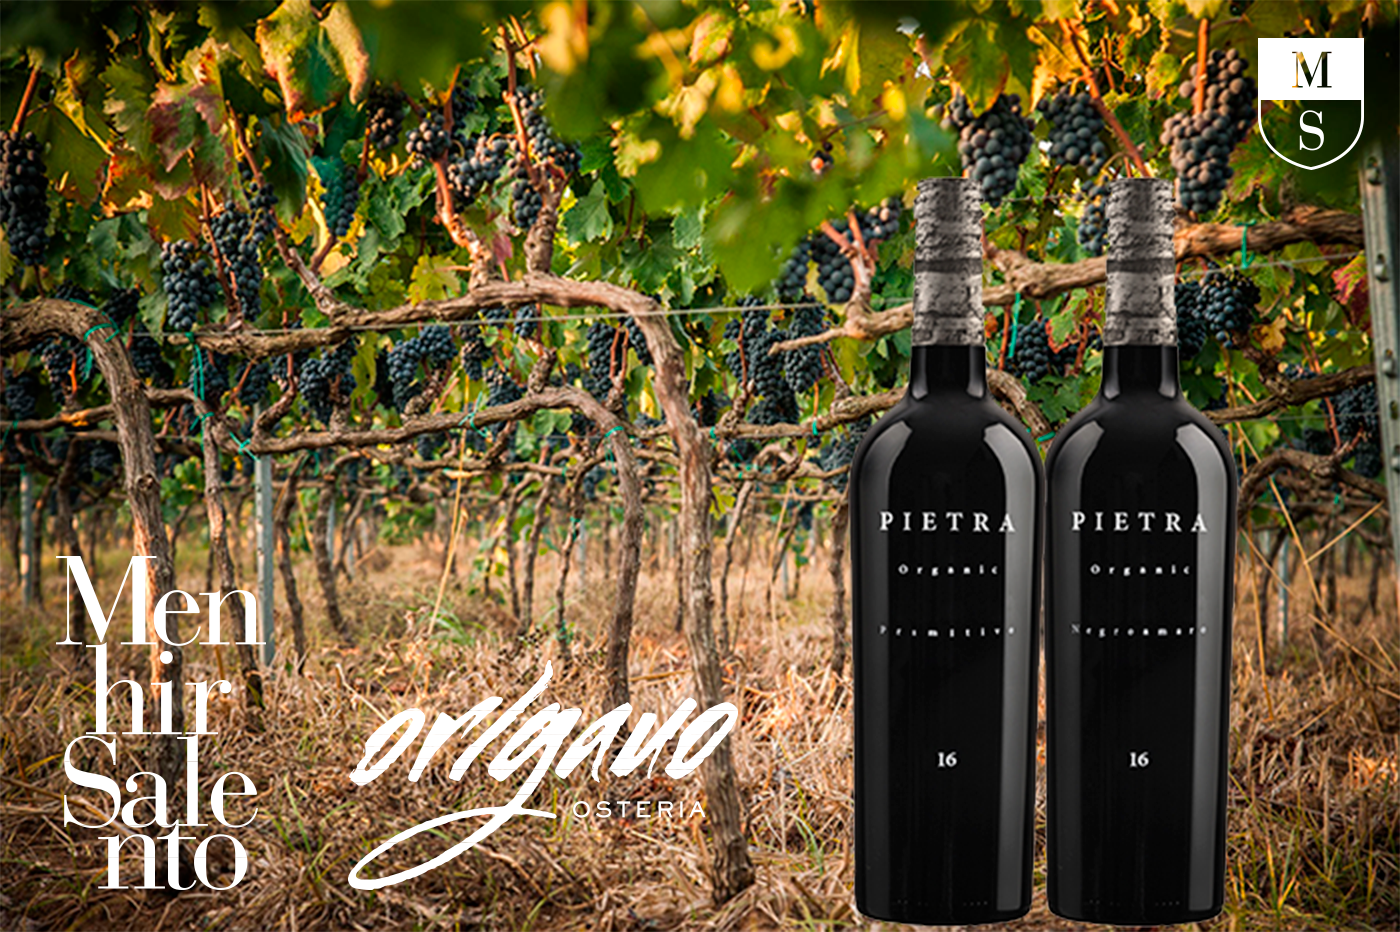 Organic wines from Italy with love...